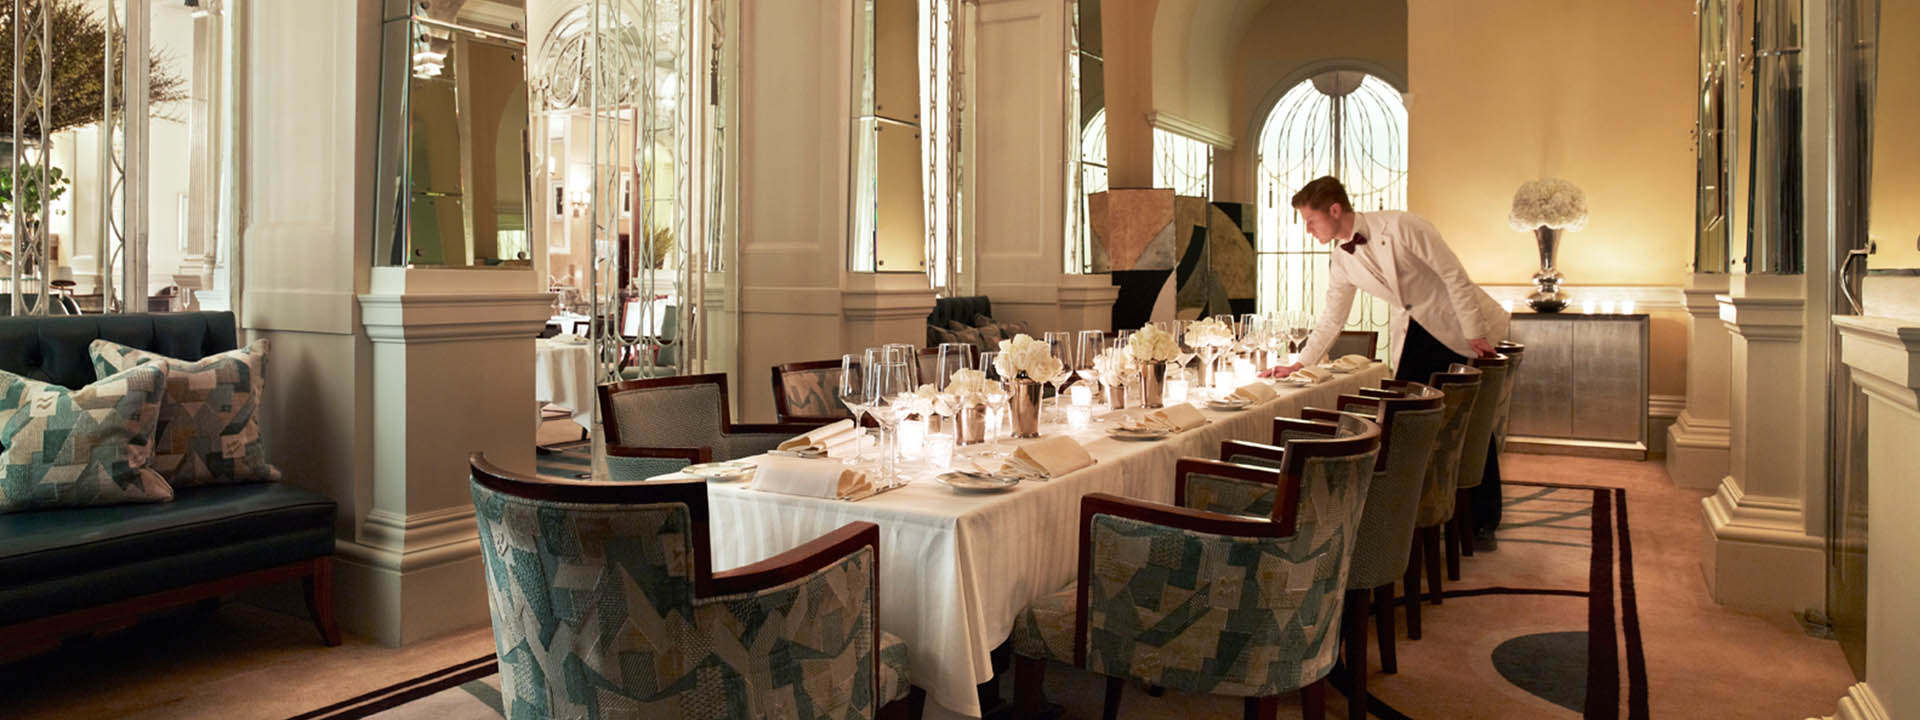 Private dining in The Foyer & Reading Room restaurant at Claridge's in Mayfair